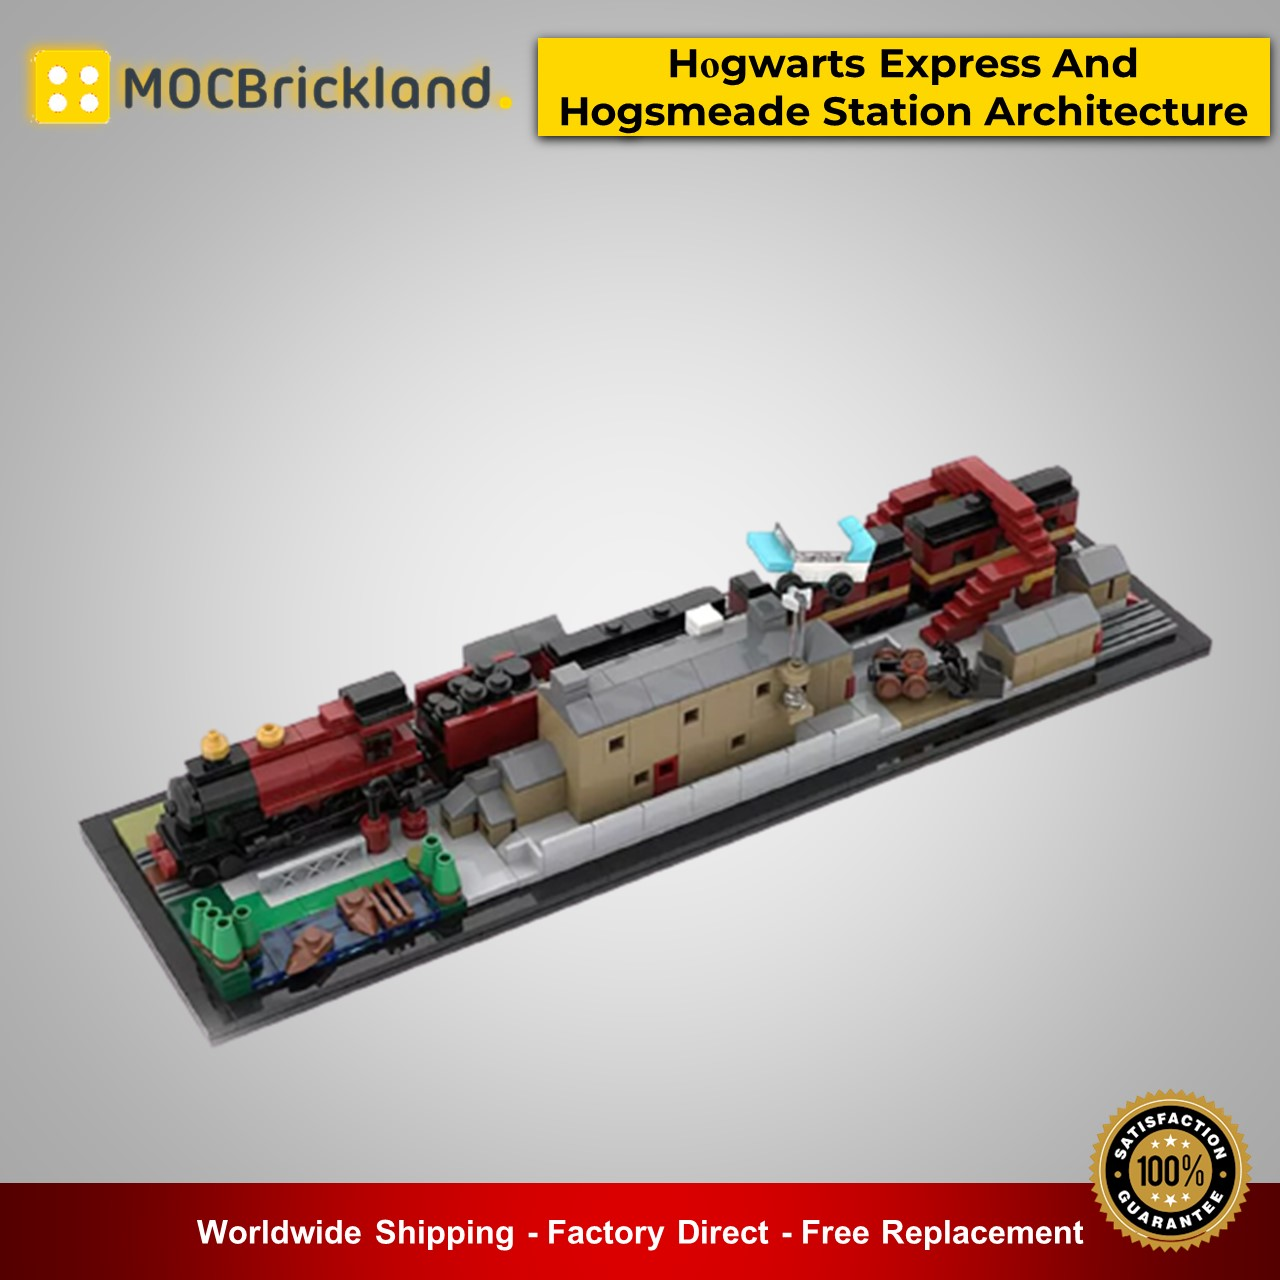 Movie moc-31632 hօgwarts express and hogsmeade station architecture harry potter by momatteo79 mocbrickland